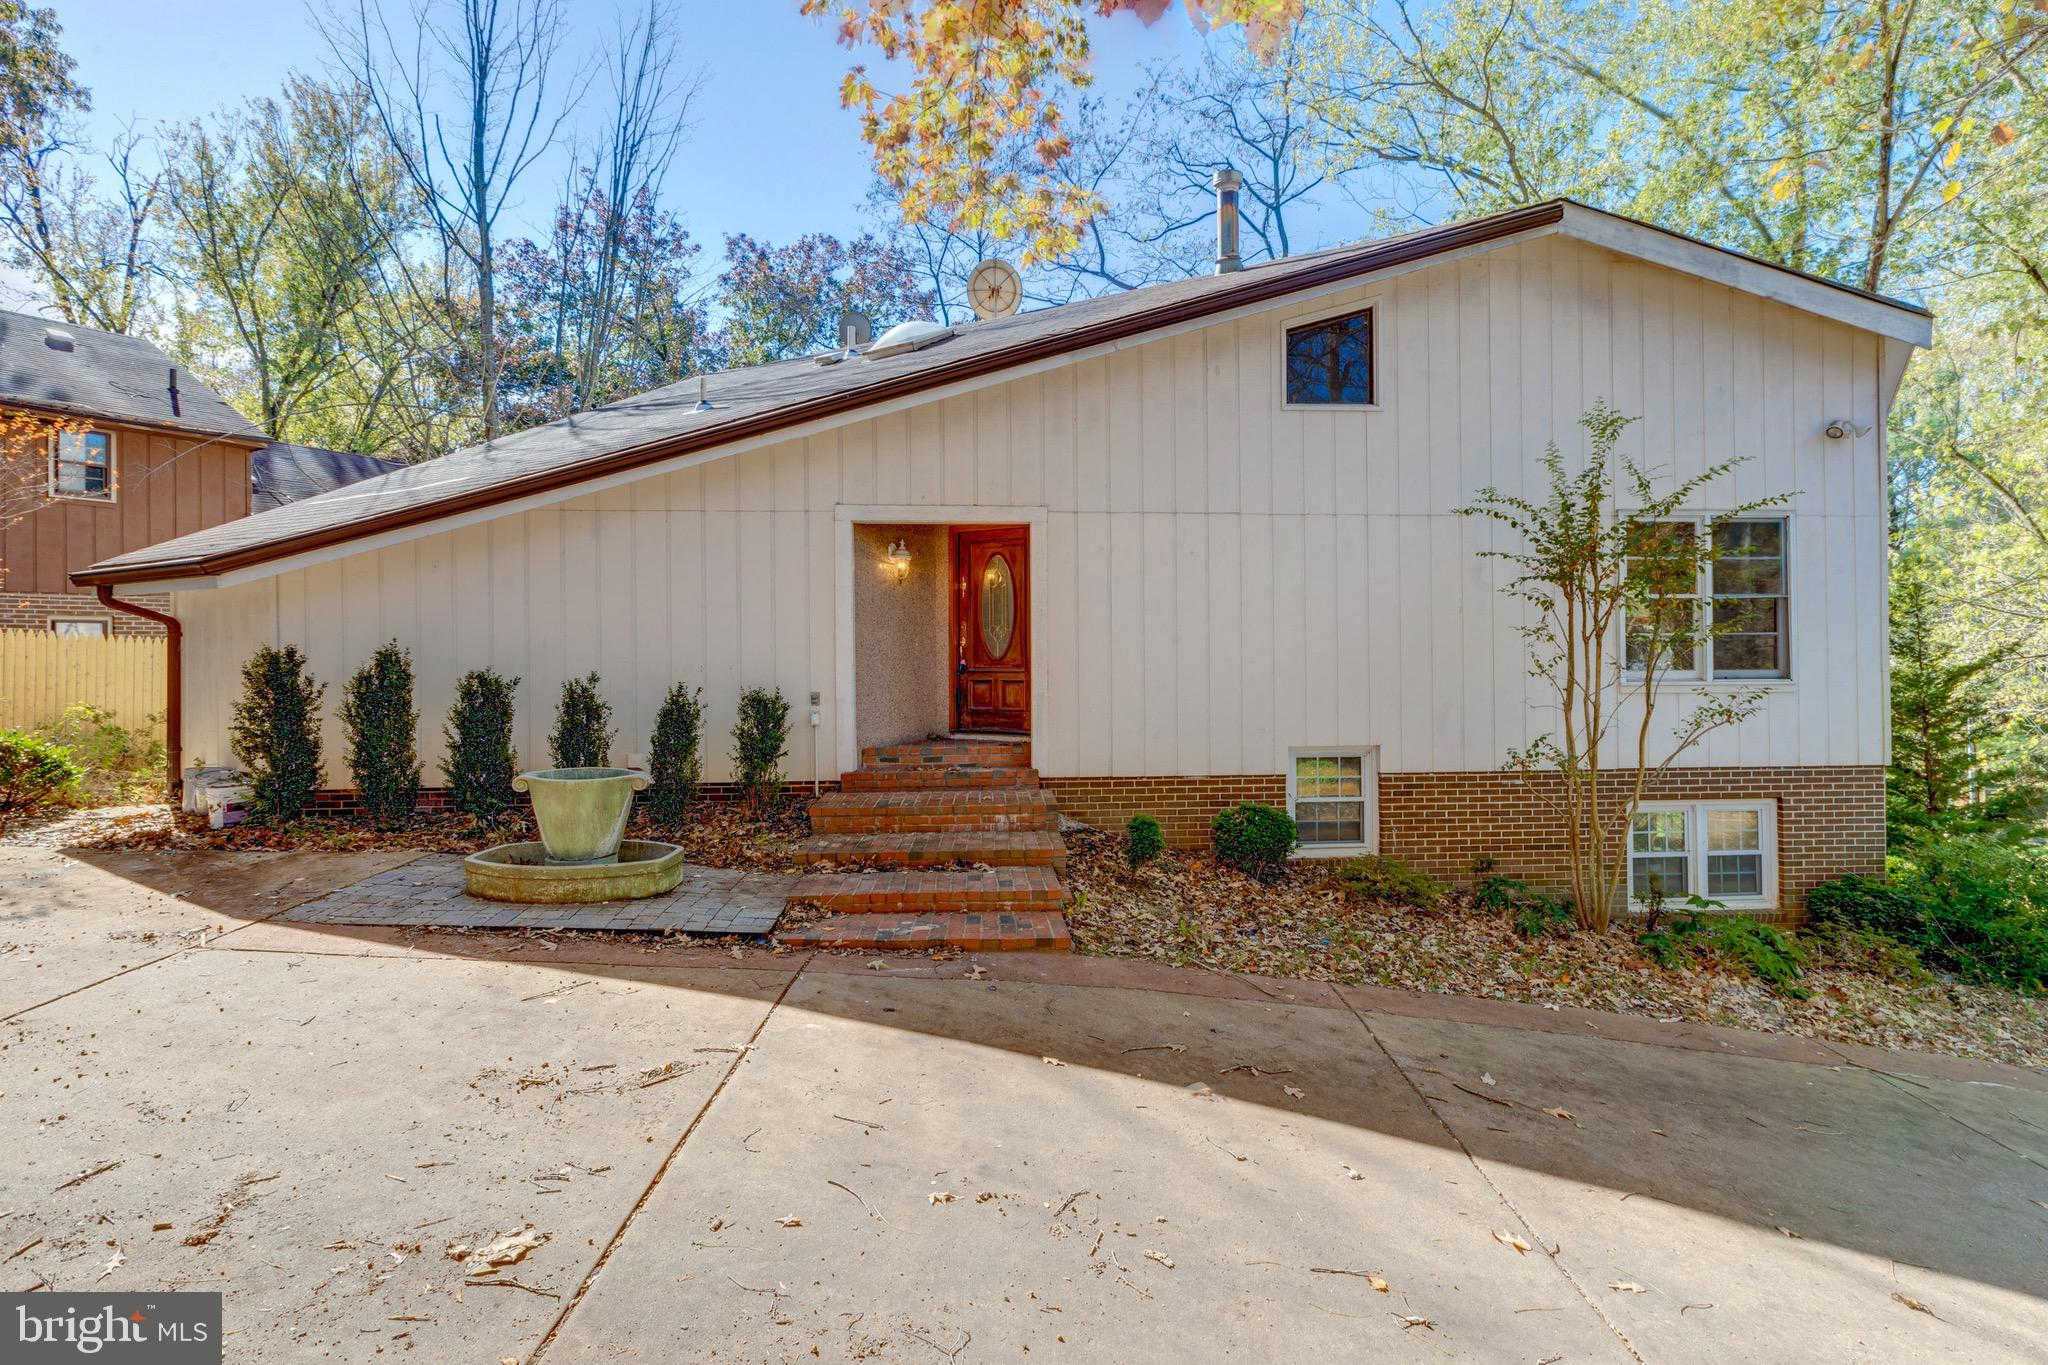 6341 Old Dominion Drive, Mclean, VA 22101 has an Open House on  Sunday, November 24, 2019 1:00 PM to 4:00 PM